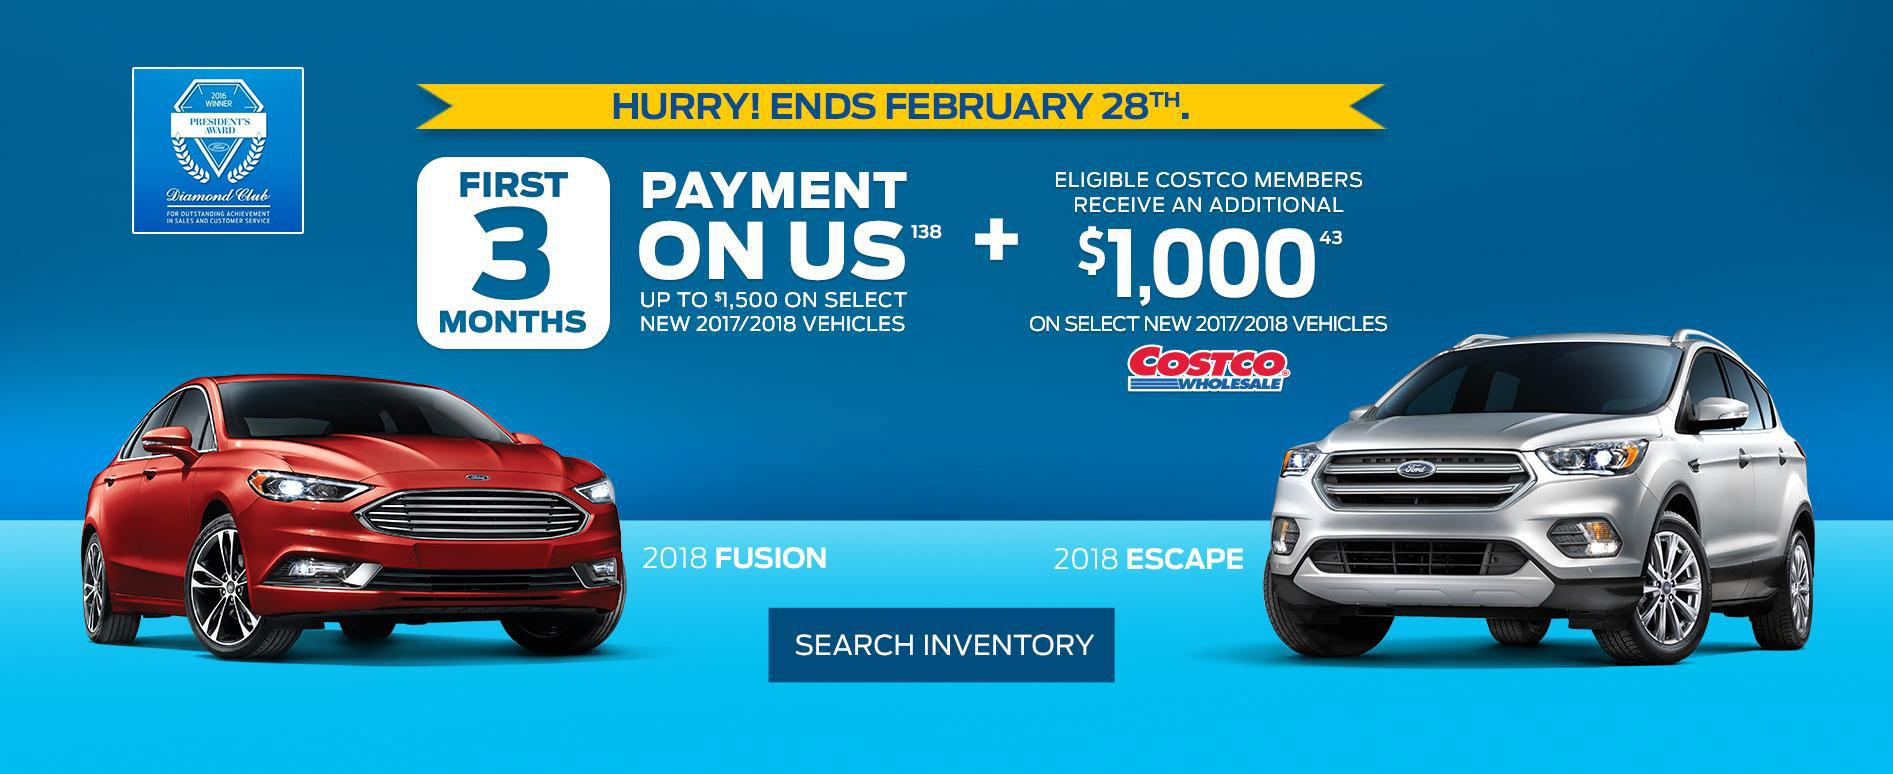 First 3 Months Payment on us at Lincoln Heights Ford